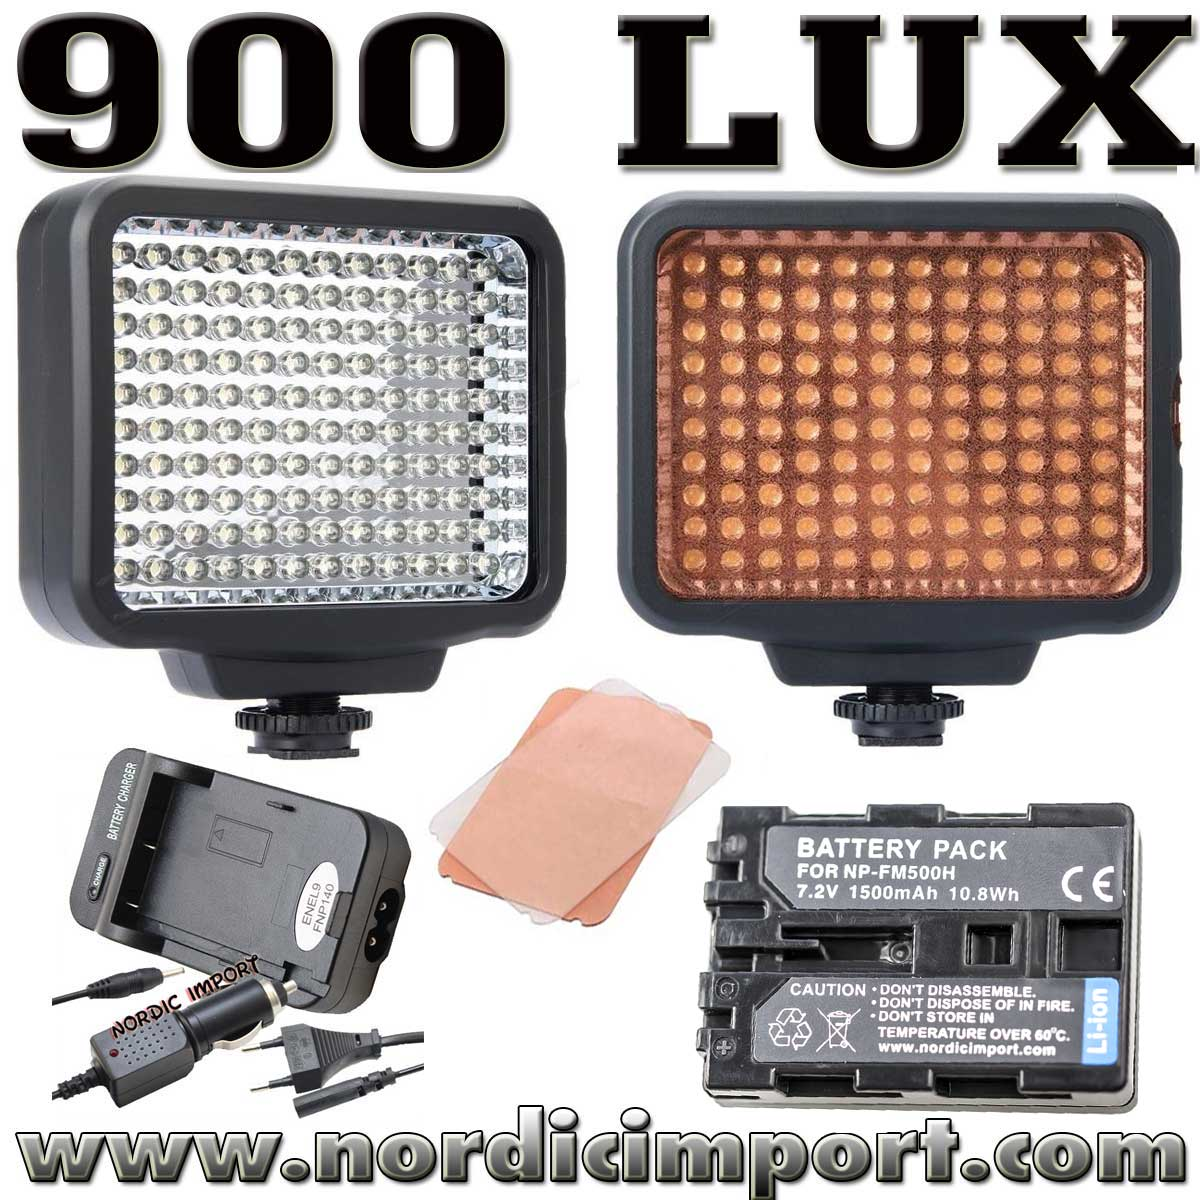 LED 900 Lux video lys /m. batteri, ladere & diffusere